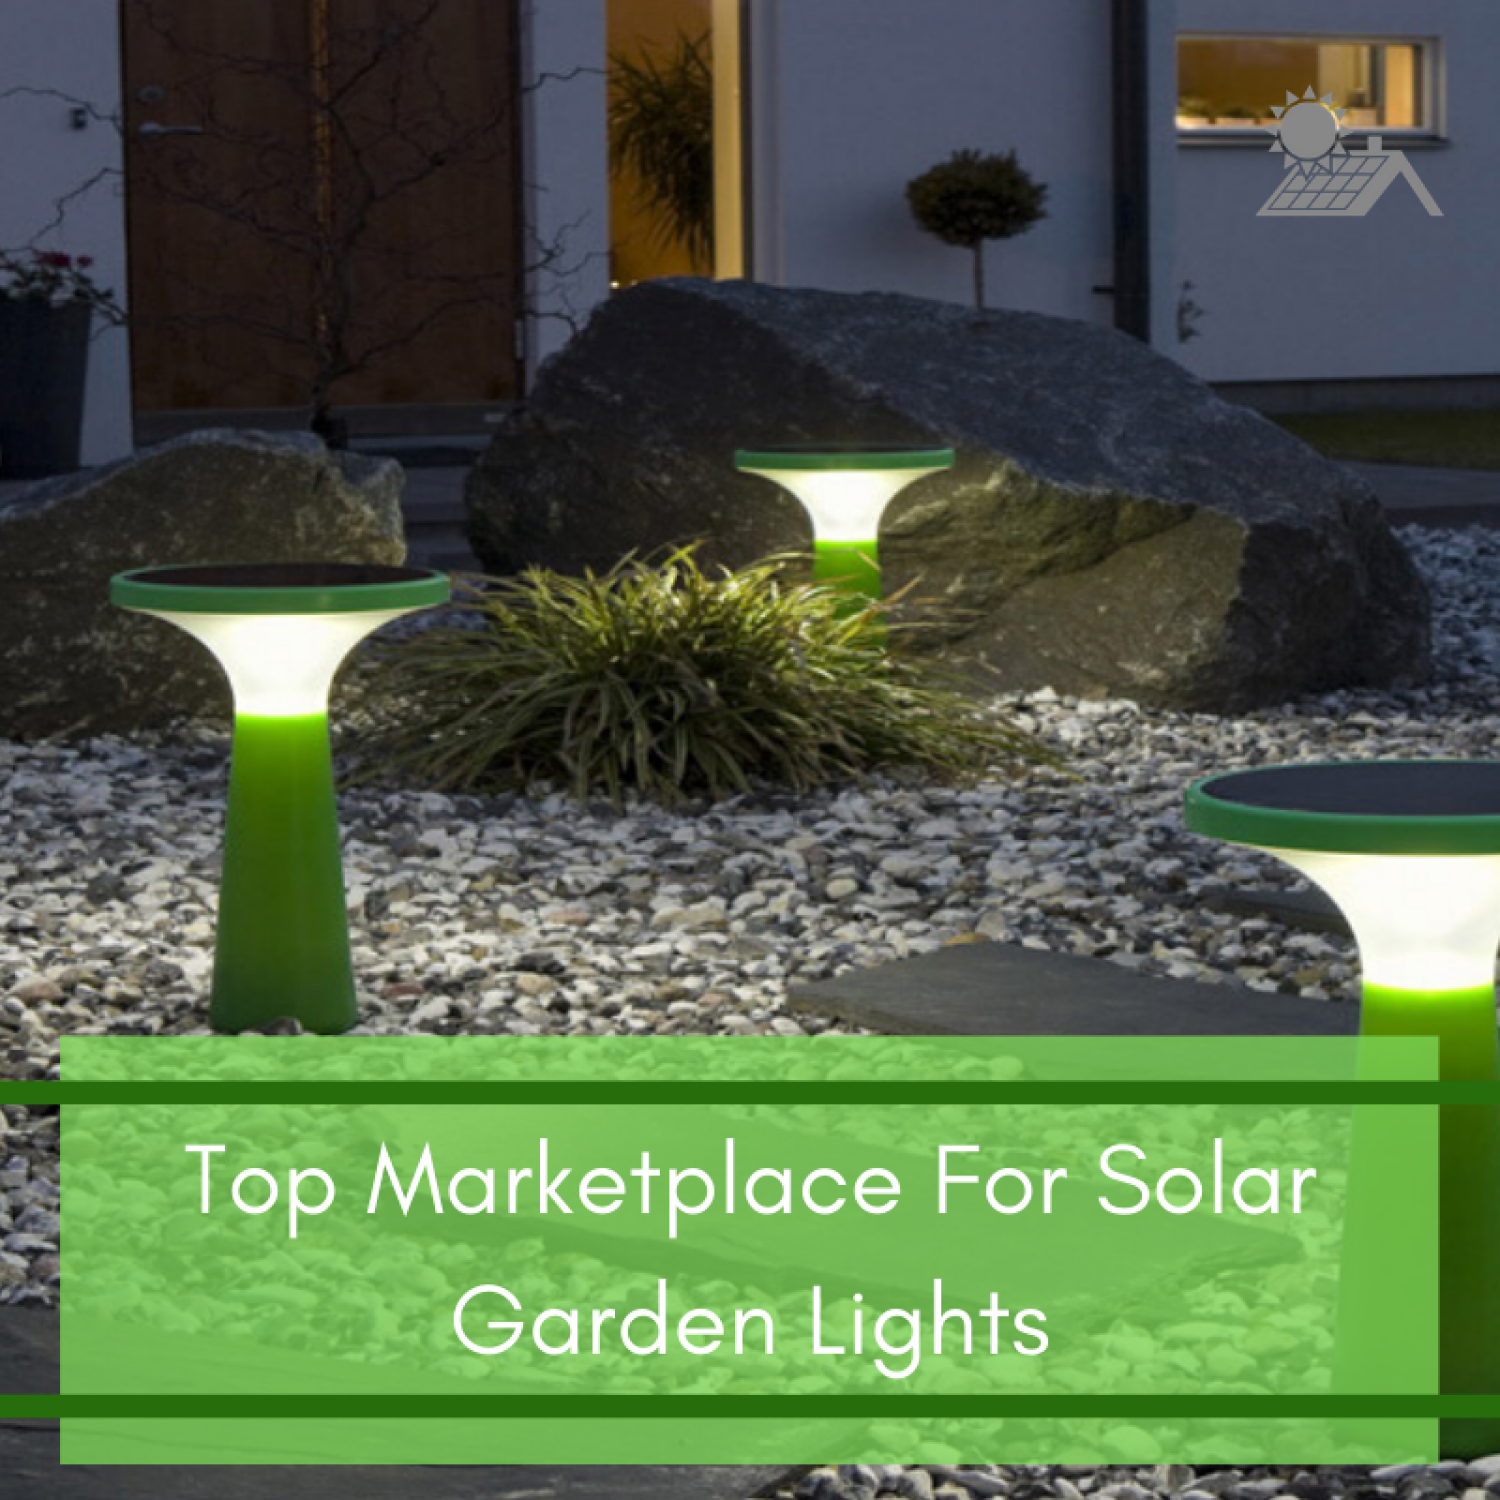 Top Marketplace For Solar Garden Lights  Infographic